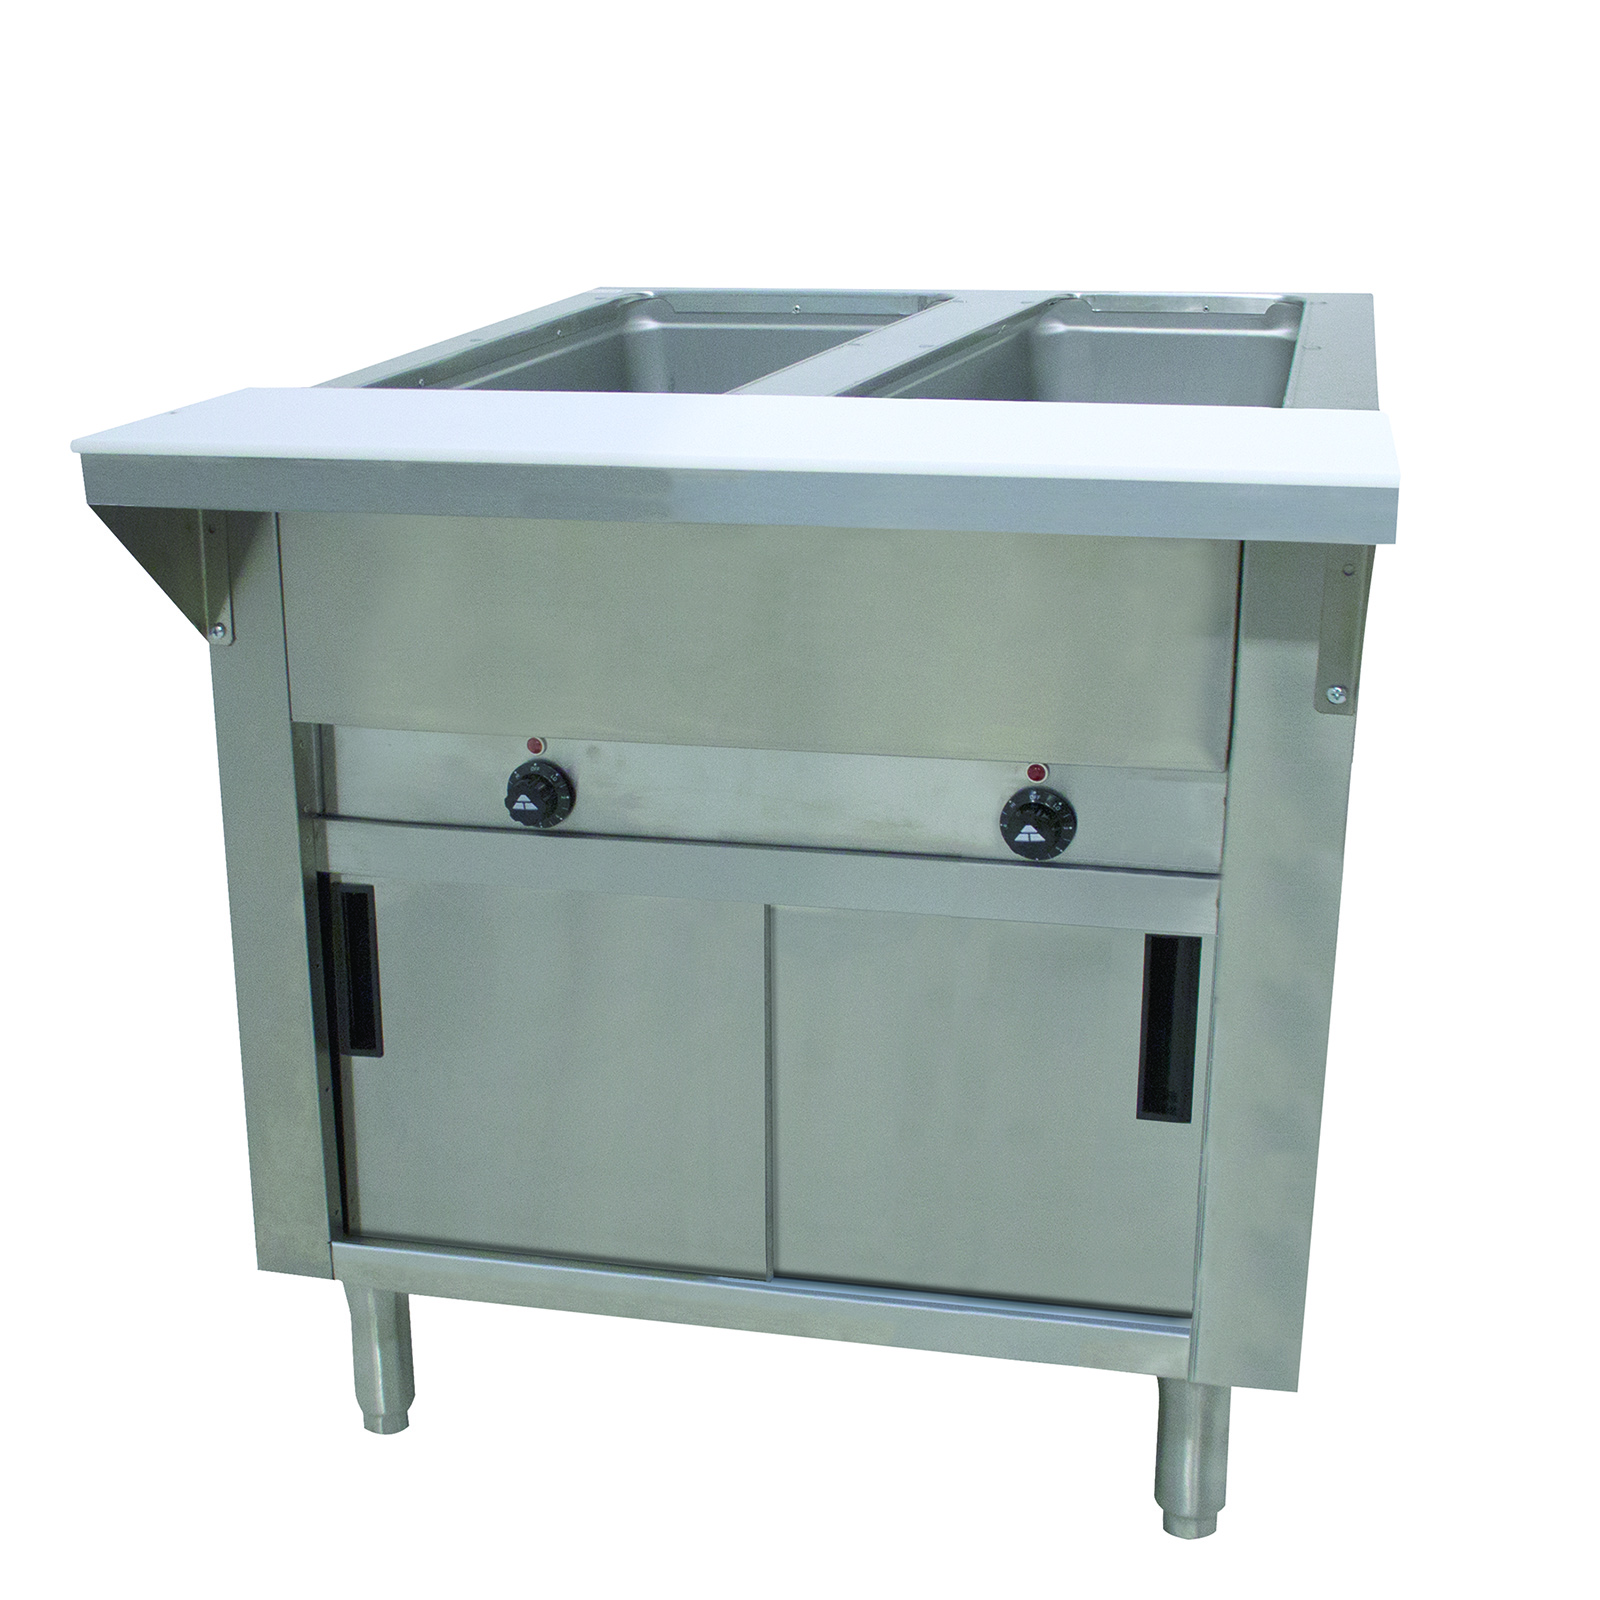 Advance Tabco HF-2E-240-DR serving counter, hot food, electric